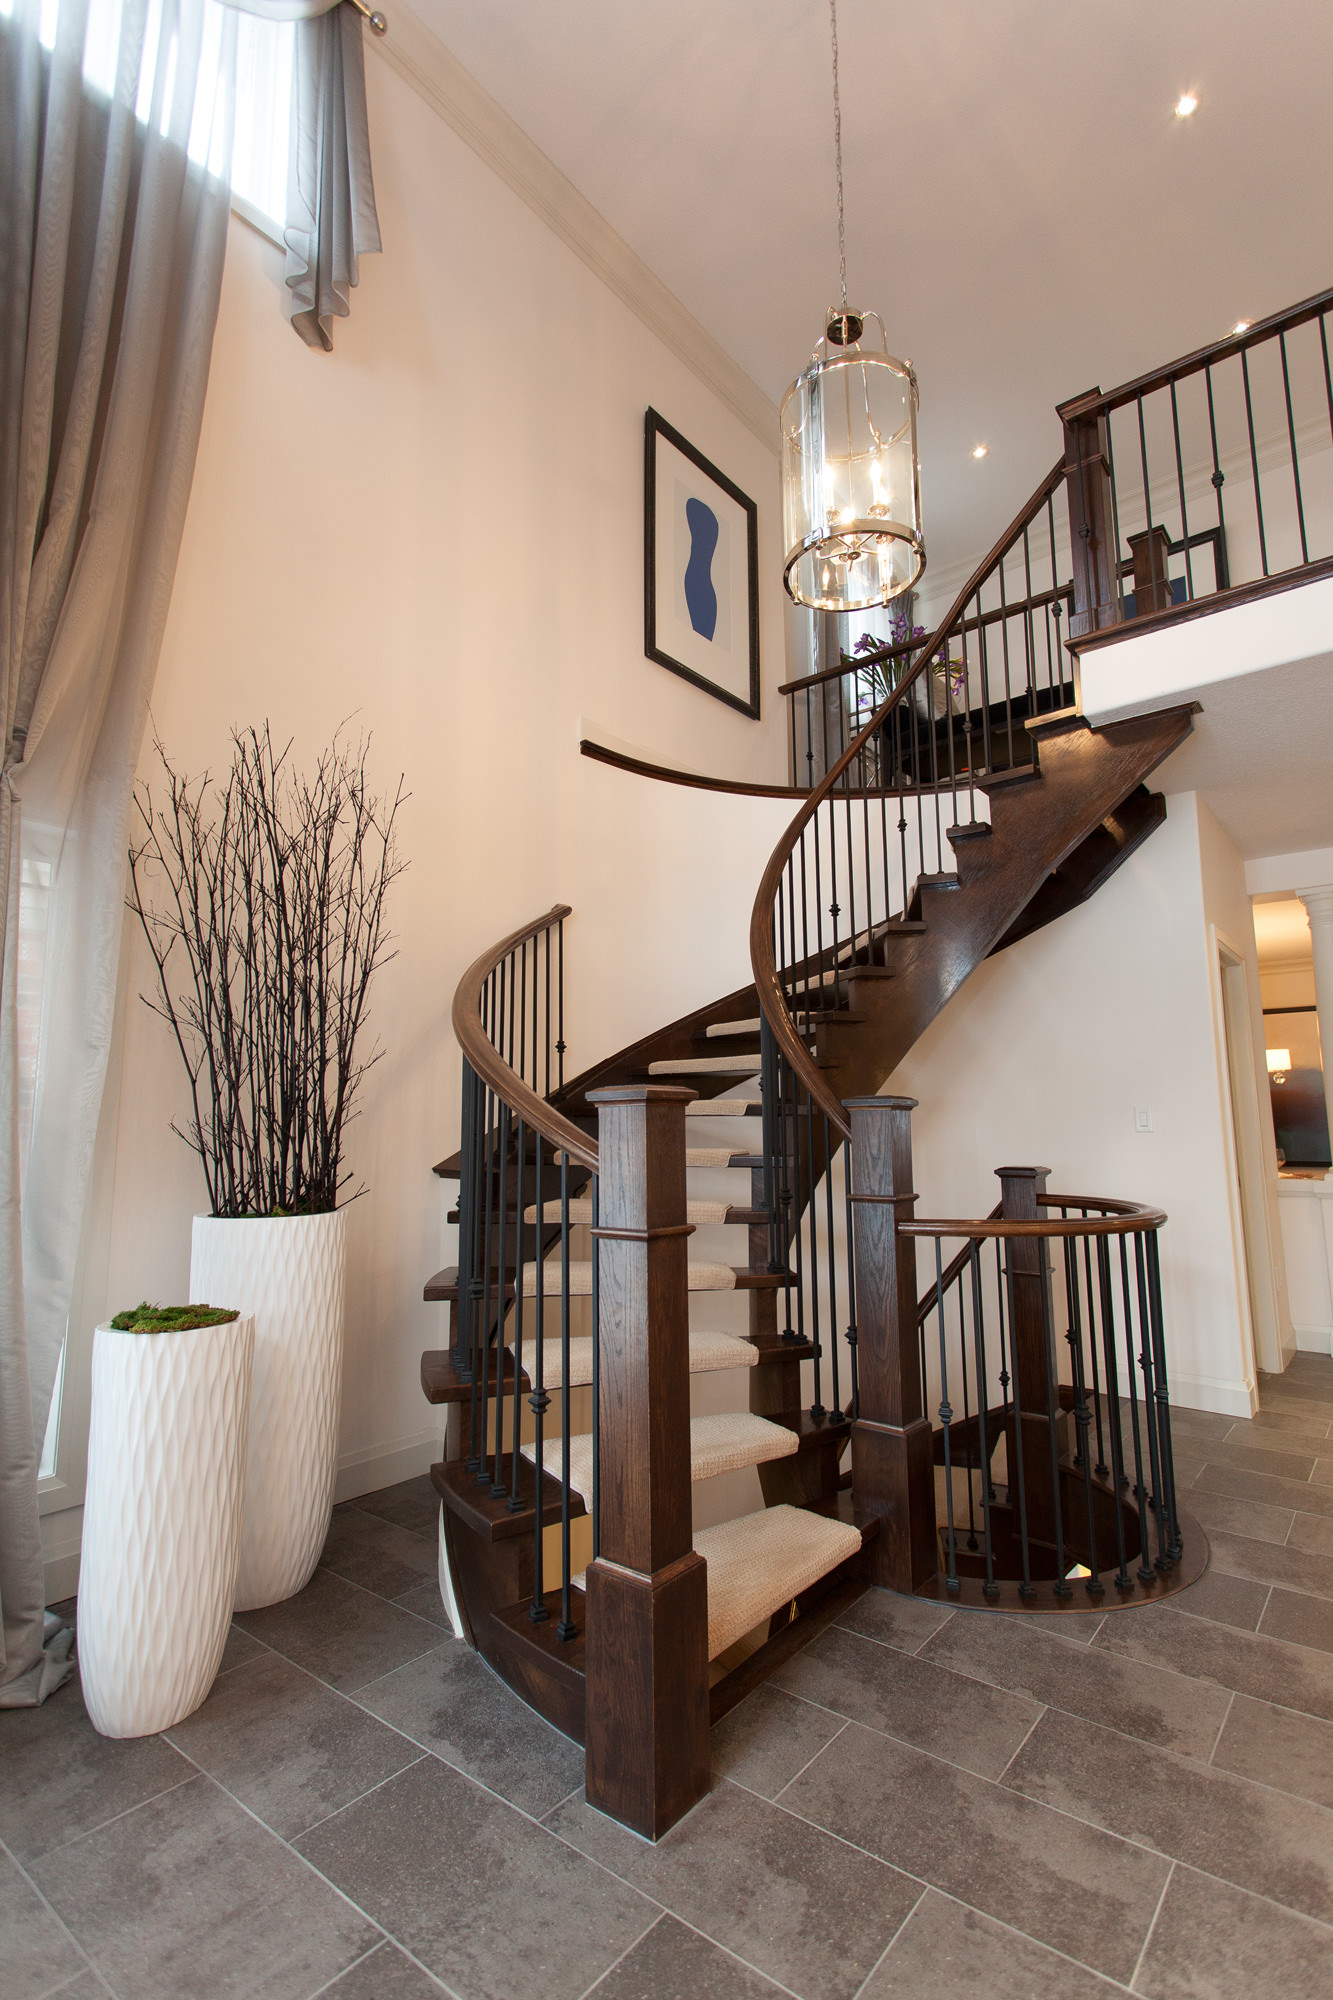 Spiral staircase in a beautiful home